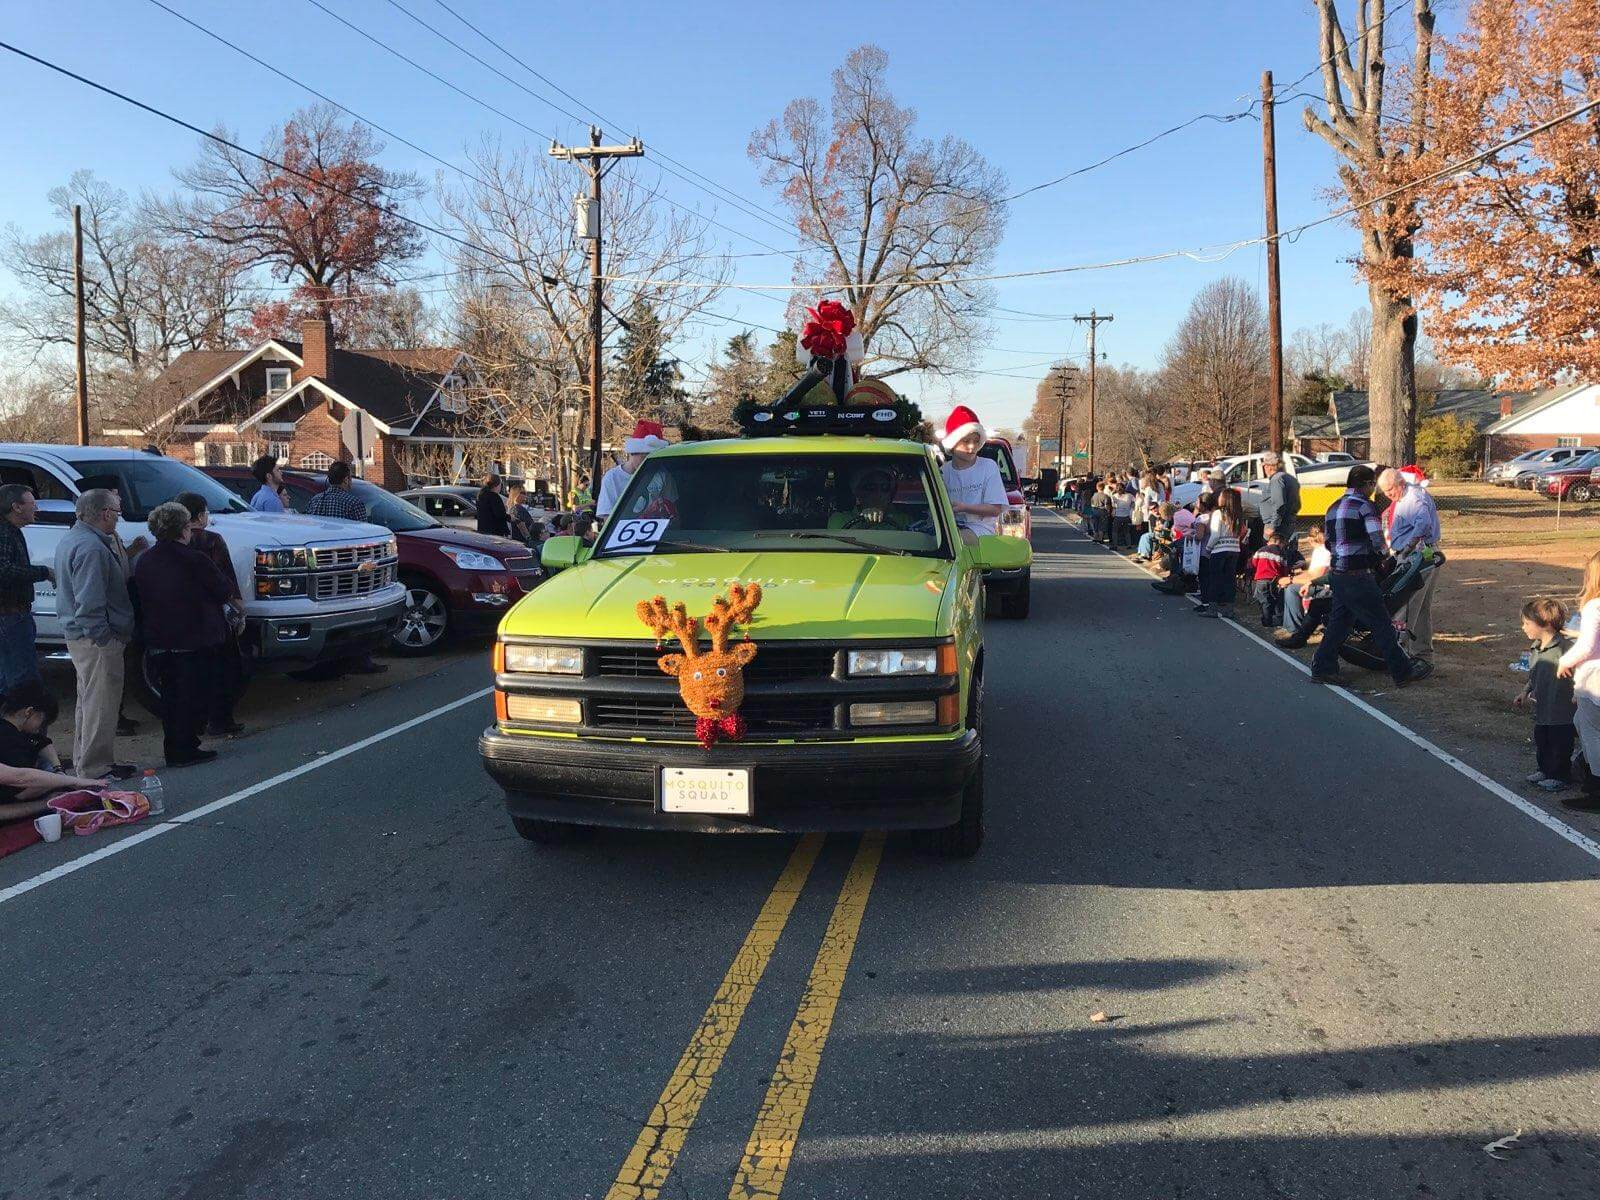 Mosquito Squad Car in Christmas Parade